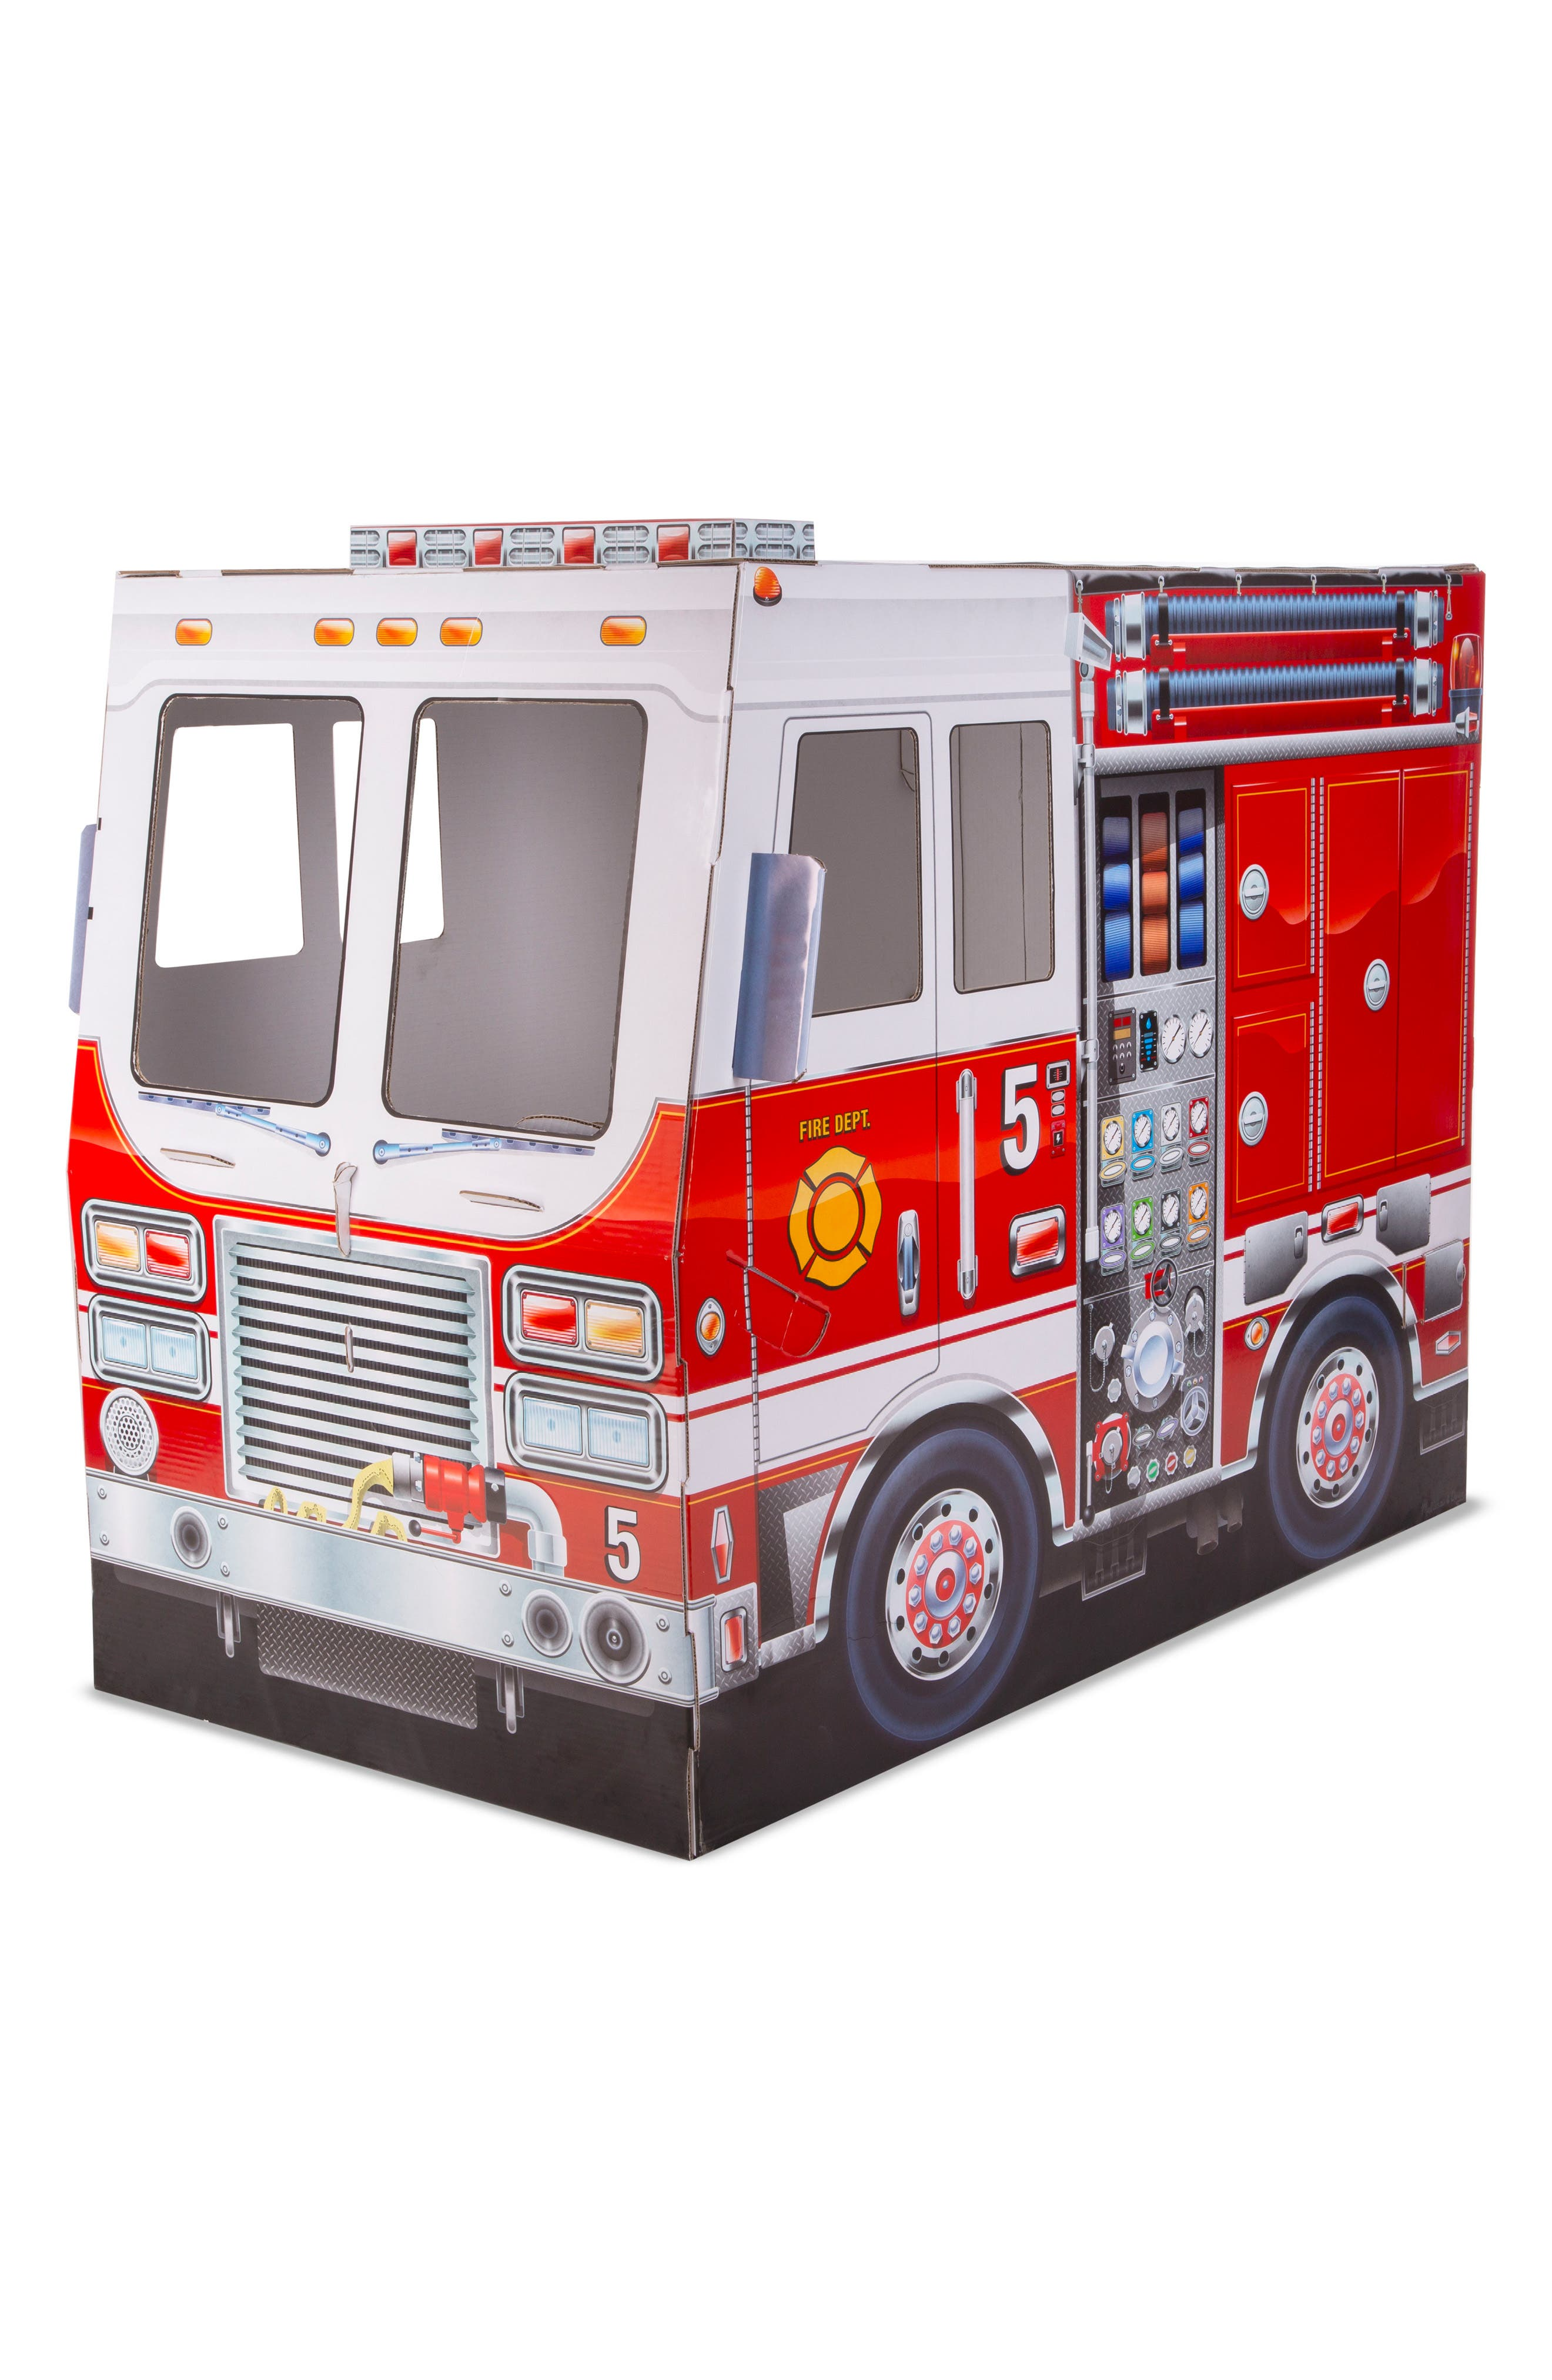 Indoor Fire Truck Playhouse,                             Main thumbnail 1, color,                             Red